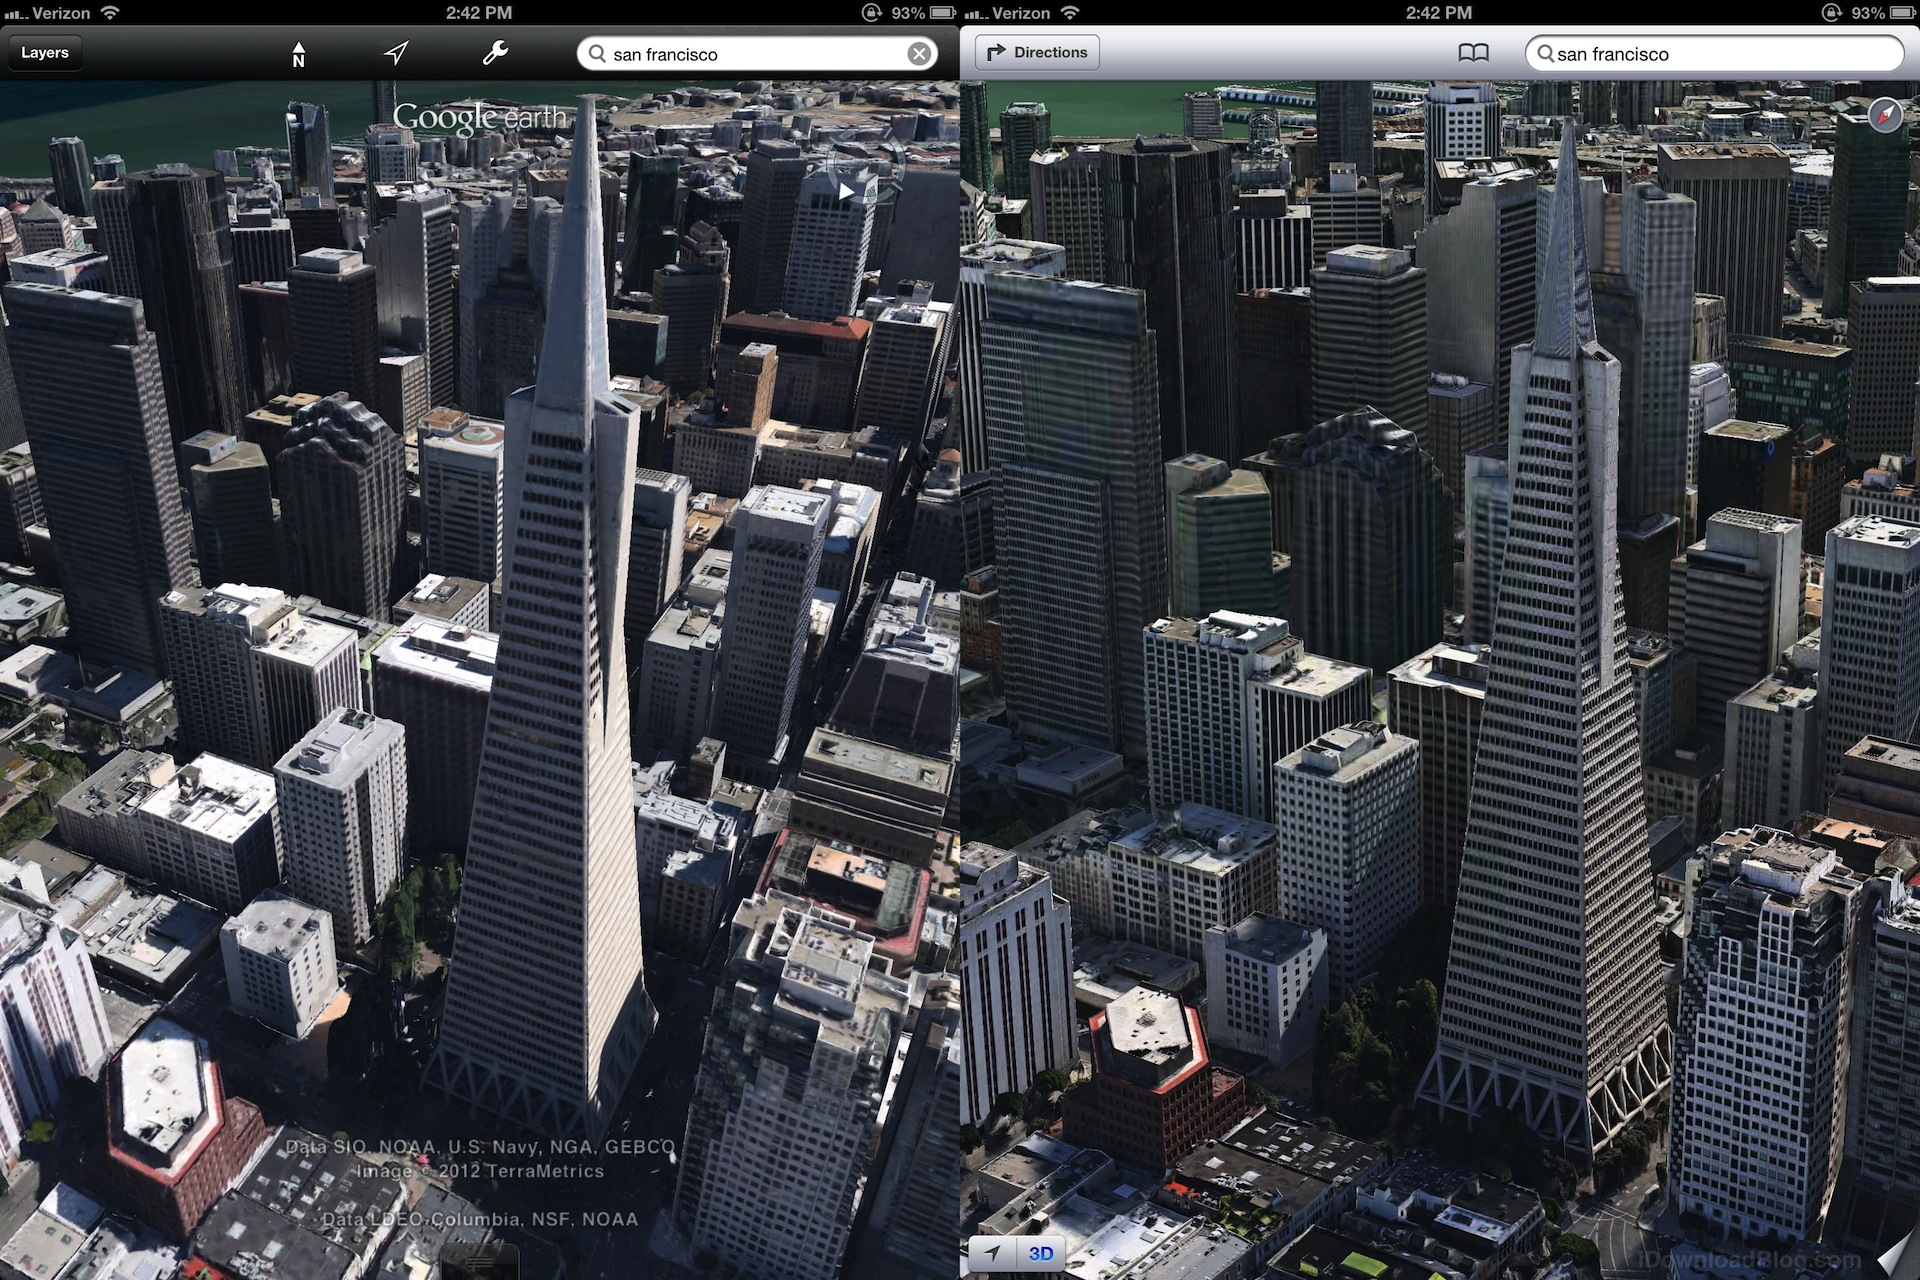 Apple's 3D maps look much better than Google's on